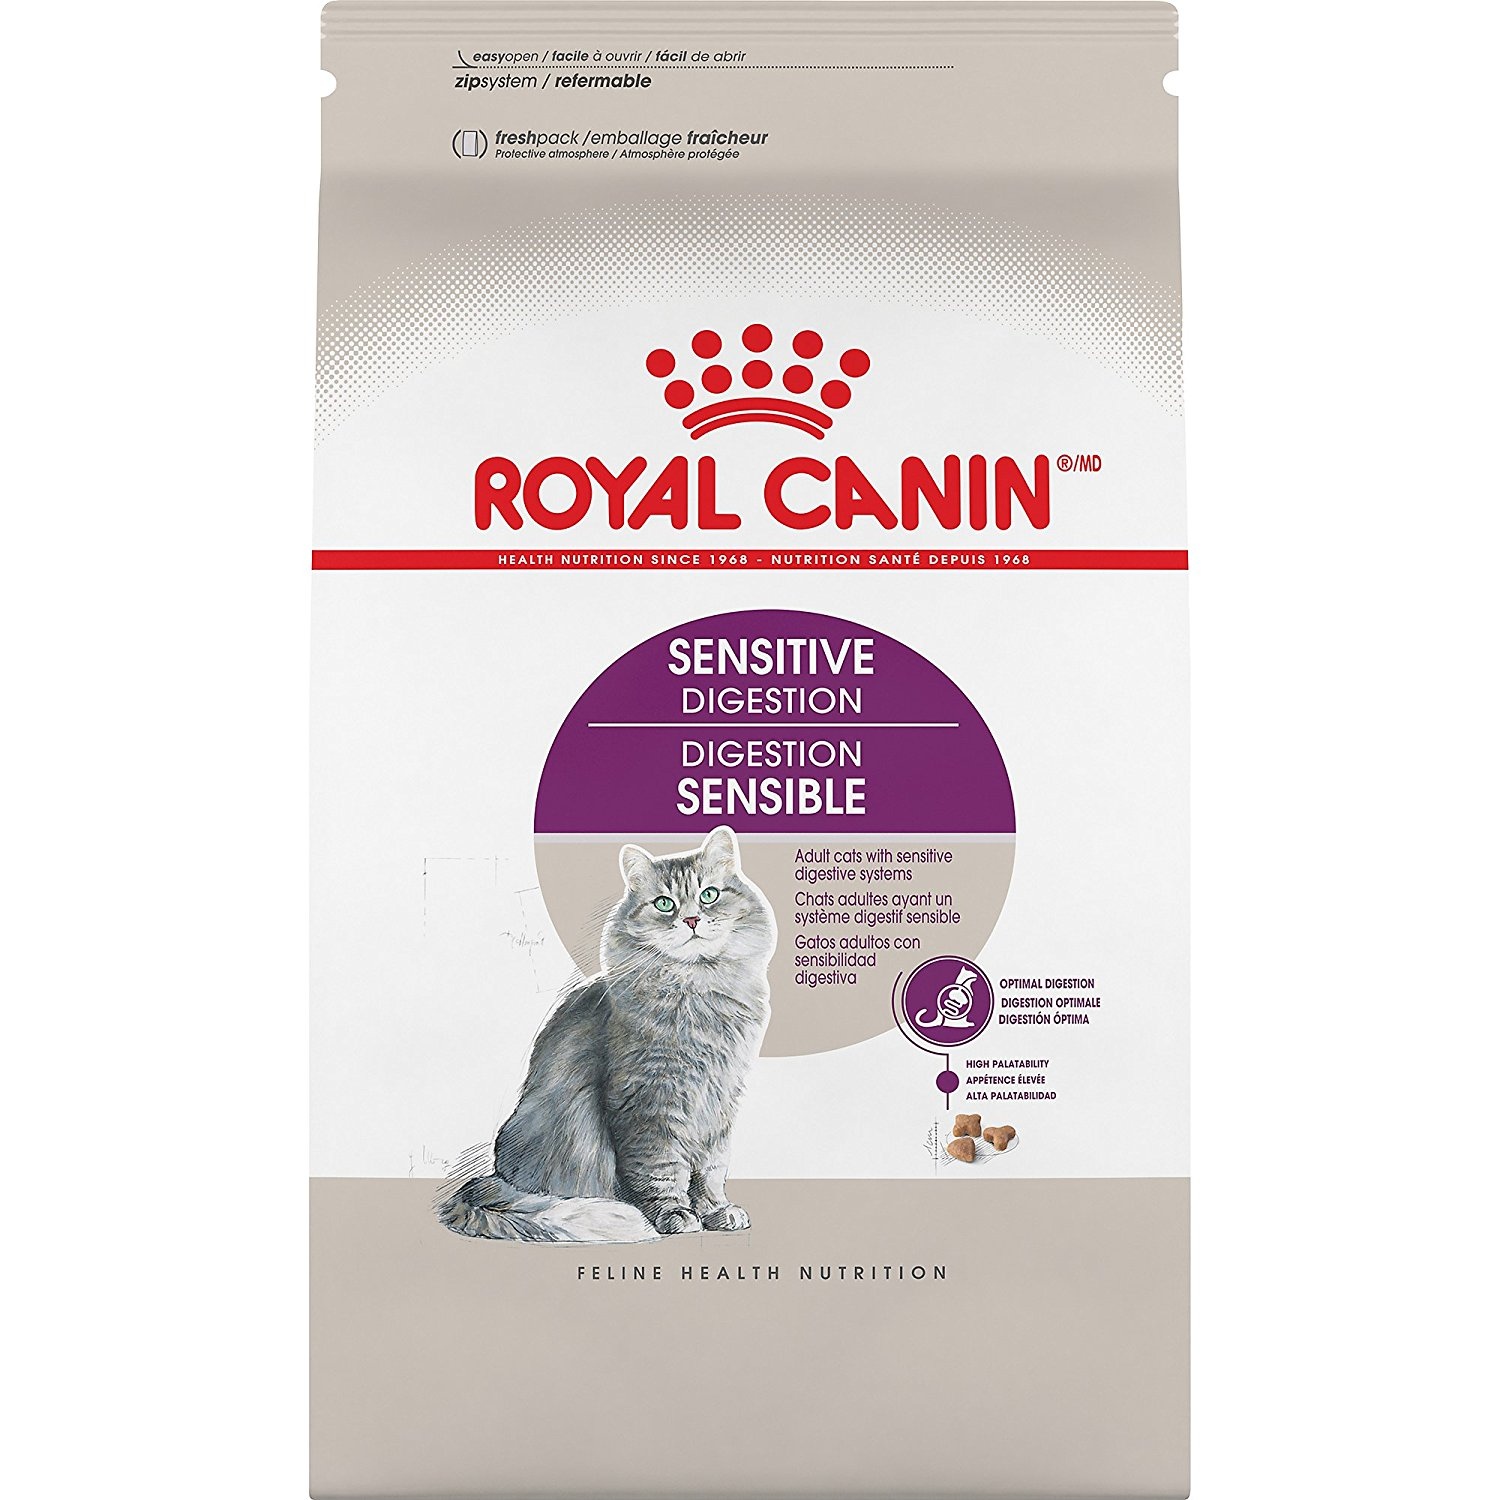 Royal Canin Feline Health Nutrition Sensitive Digestion Dry Adult Cat Food